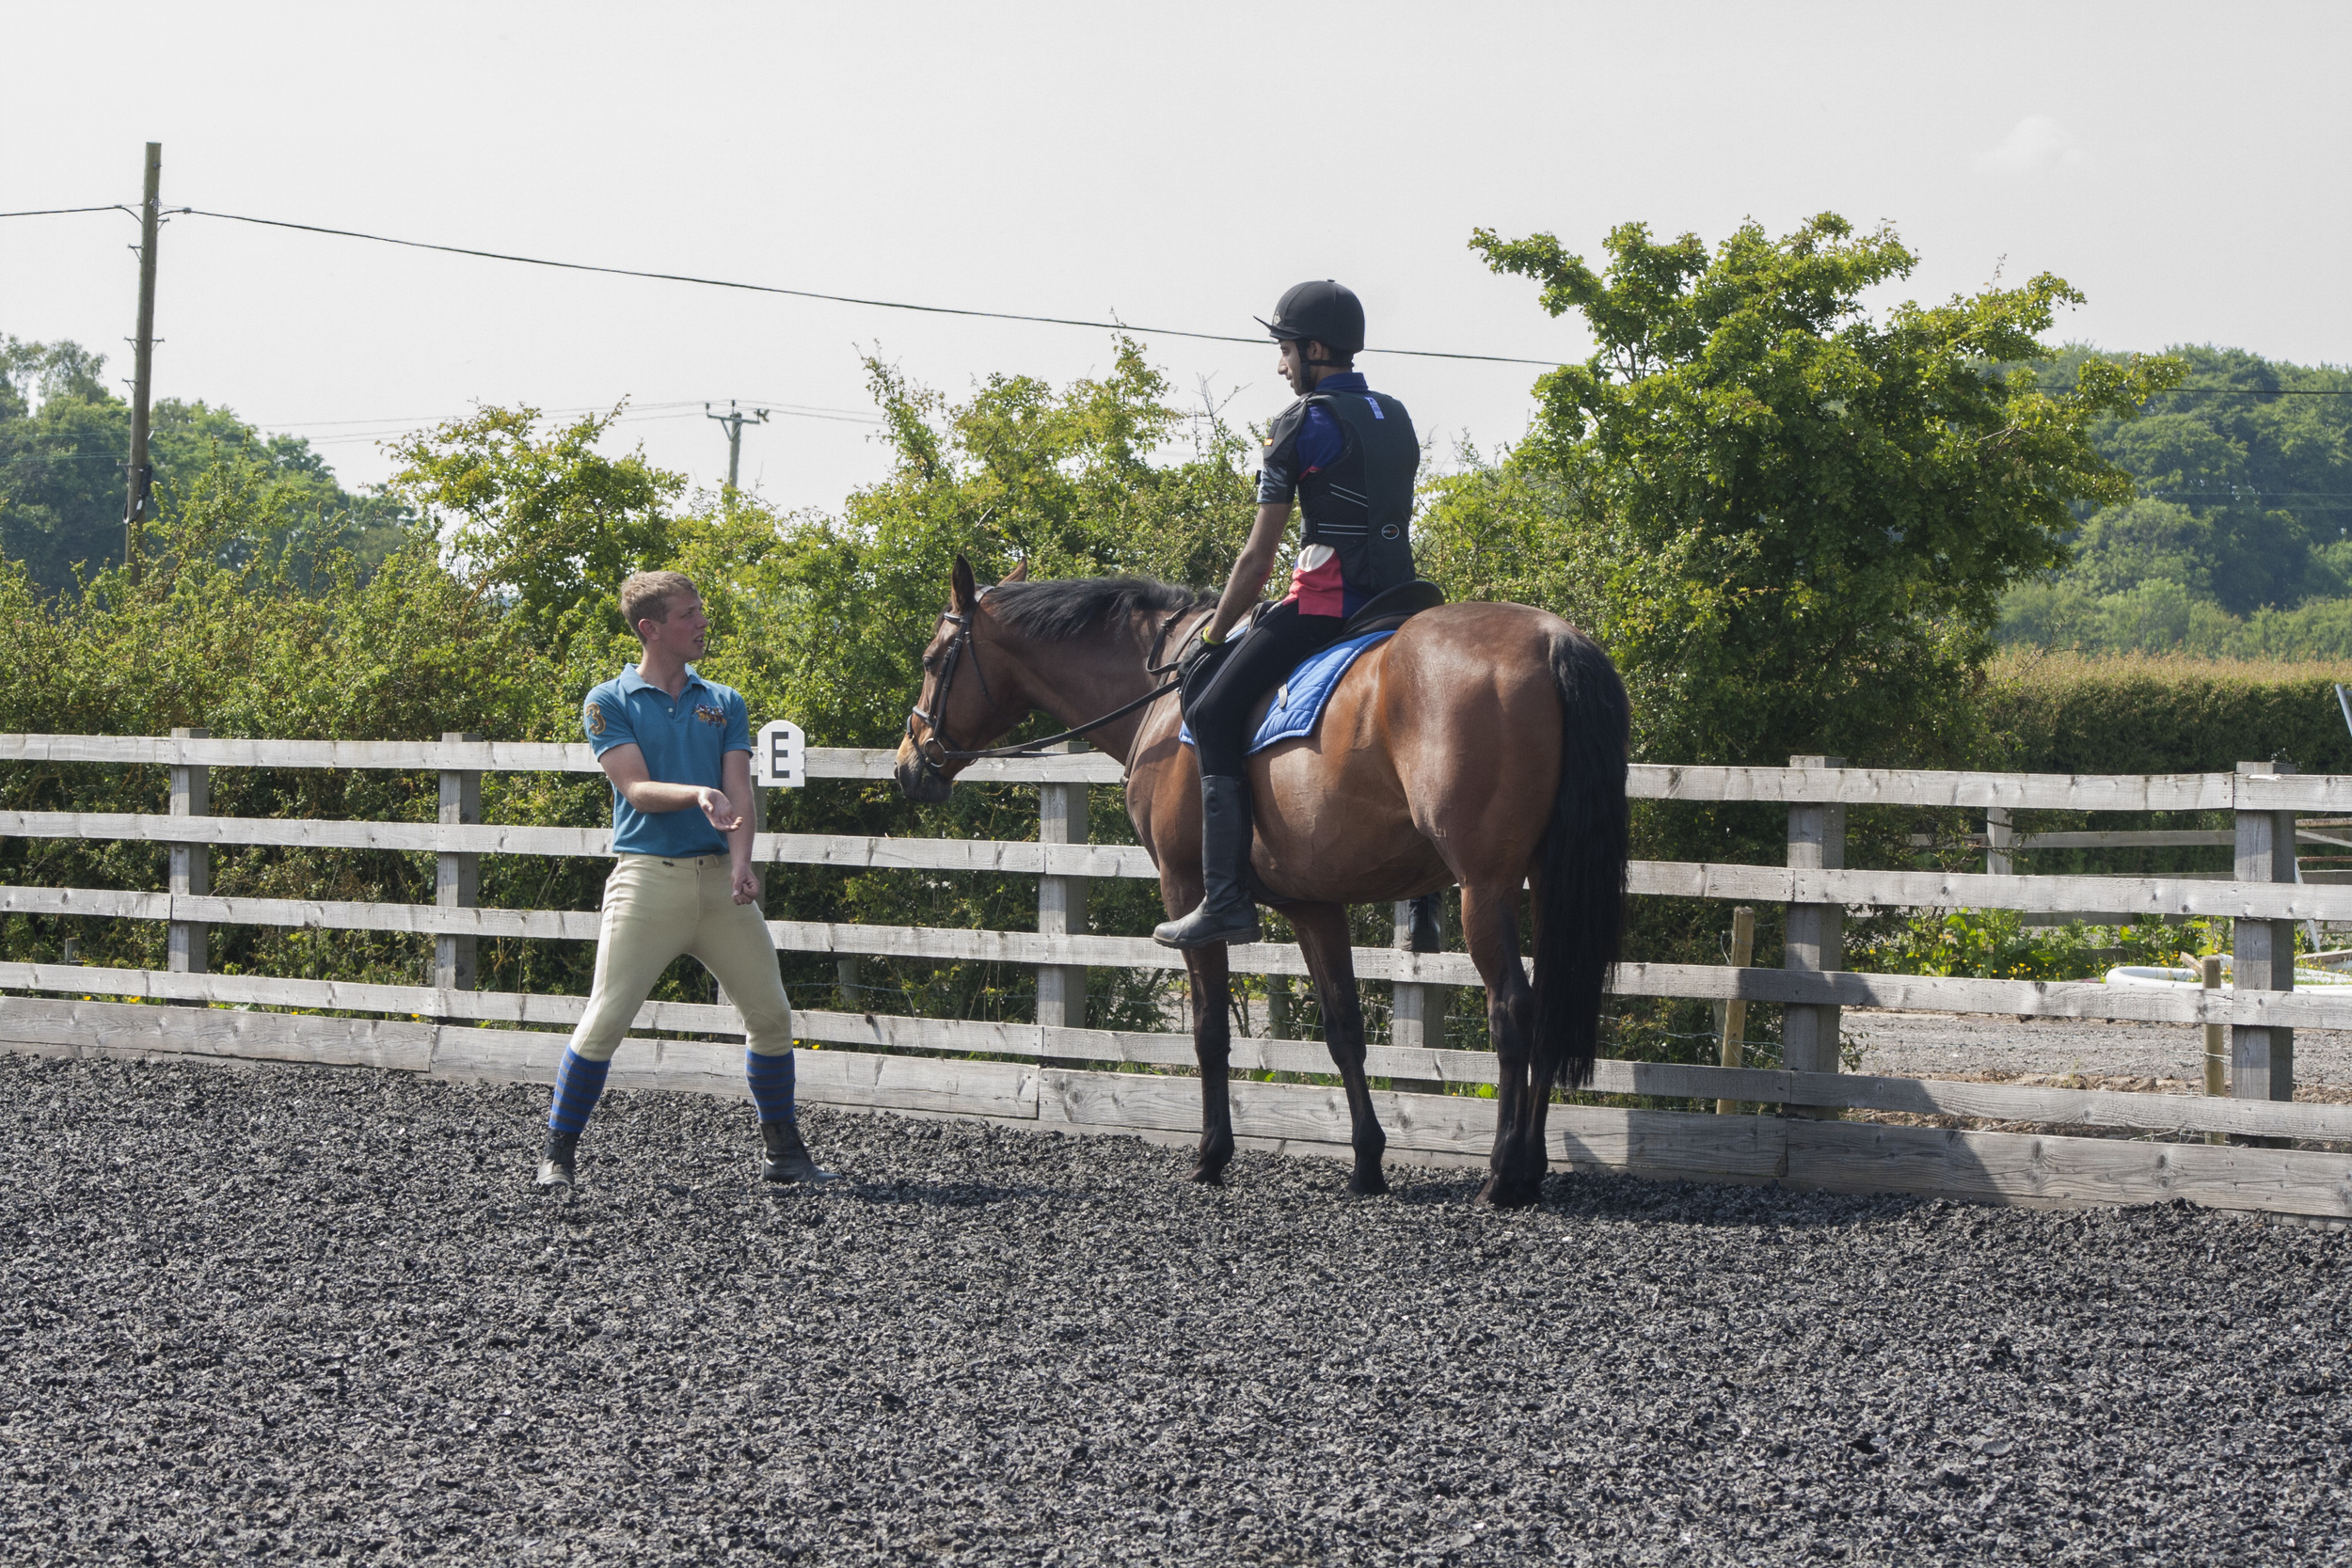 york-riding-school-lessons.jpg